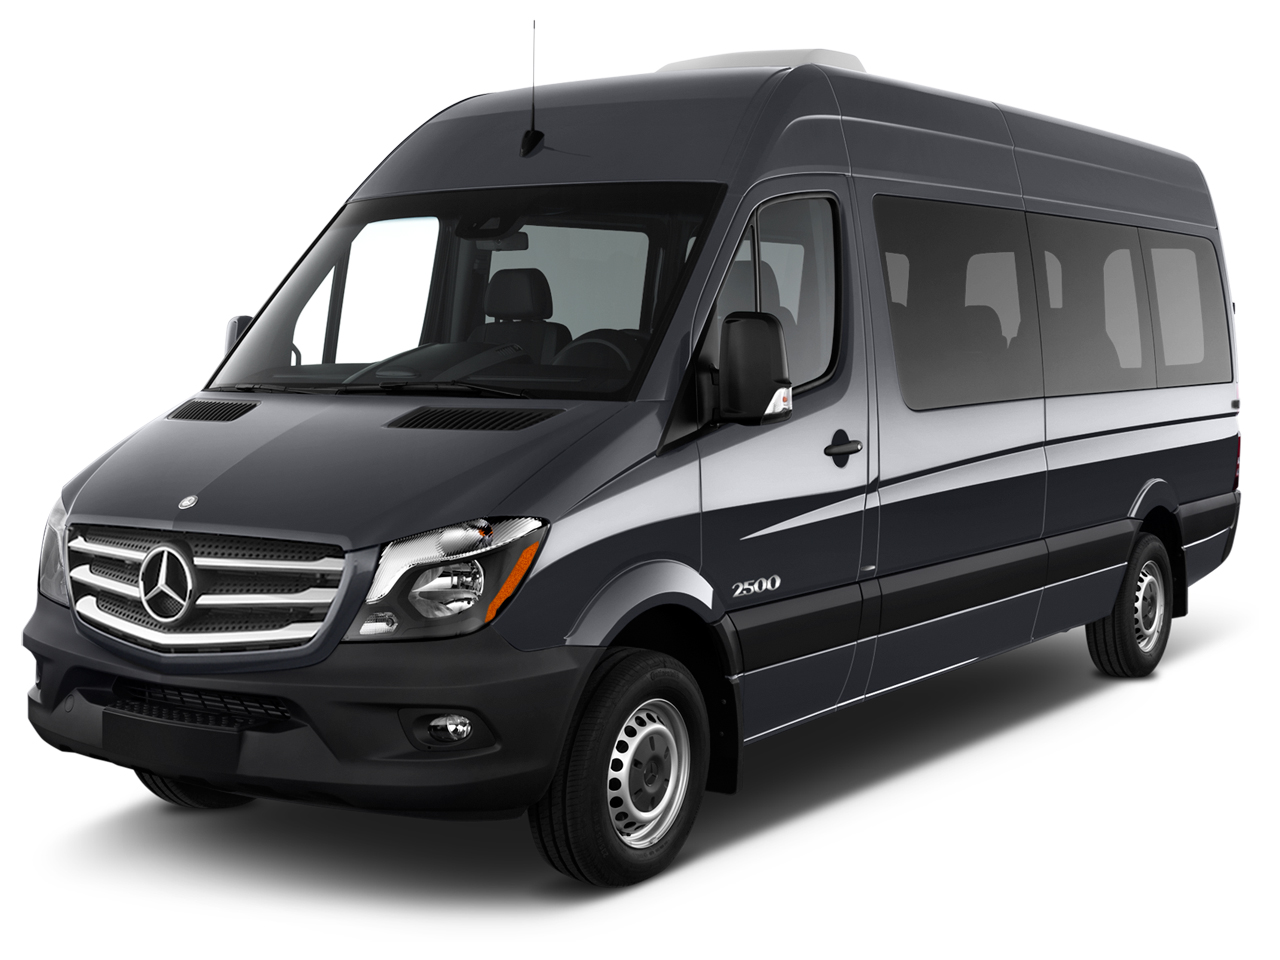 2017 mercedes benz sprinter passenger van review ratings